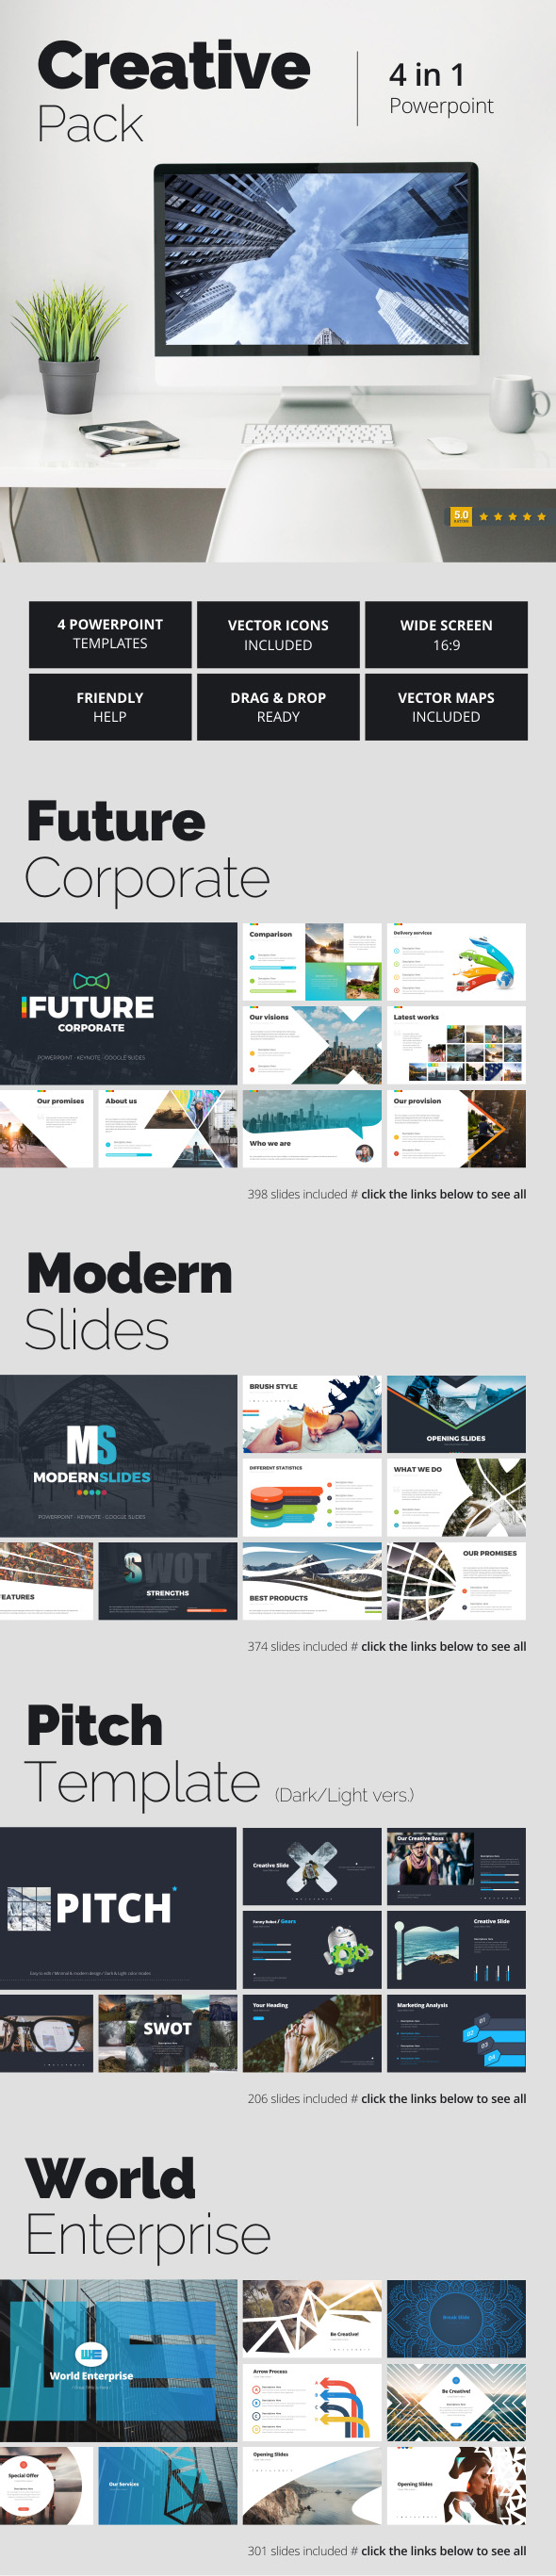 Creative Pack - Creative PowerPoint Templates